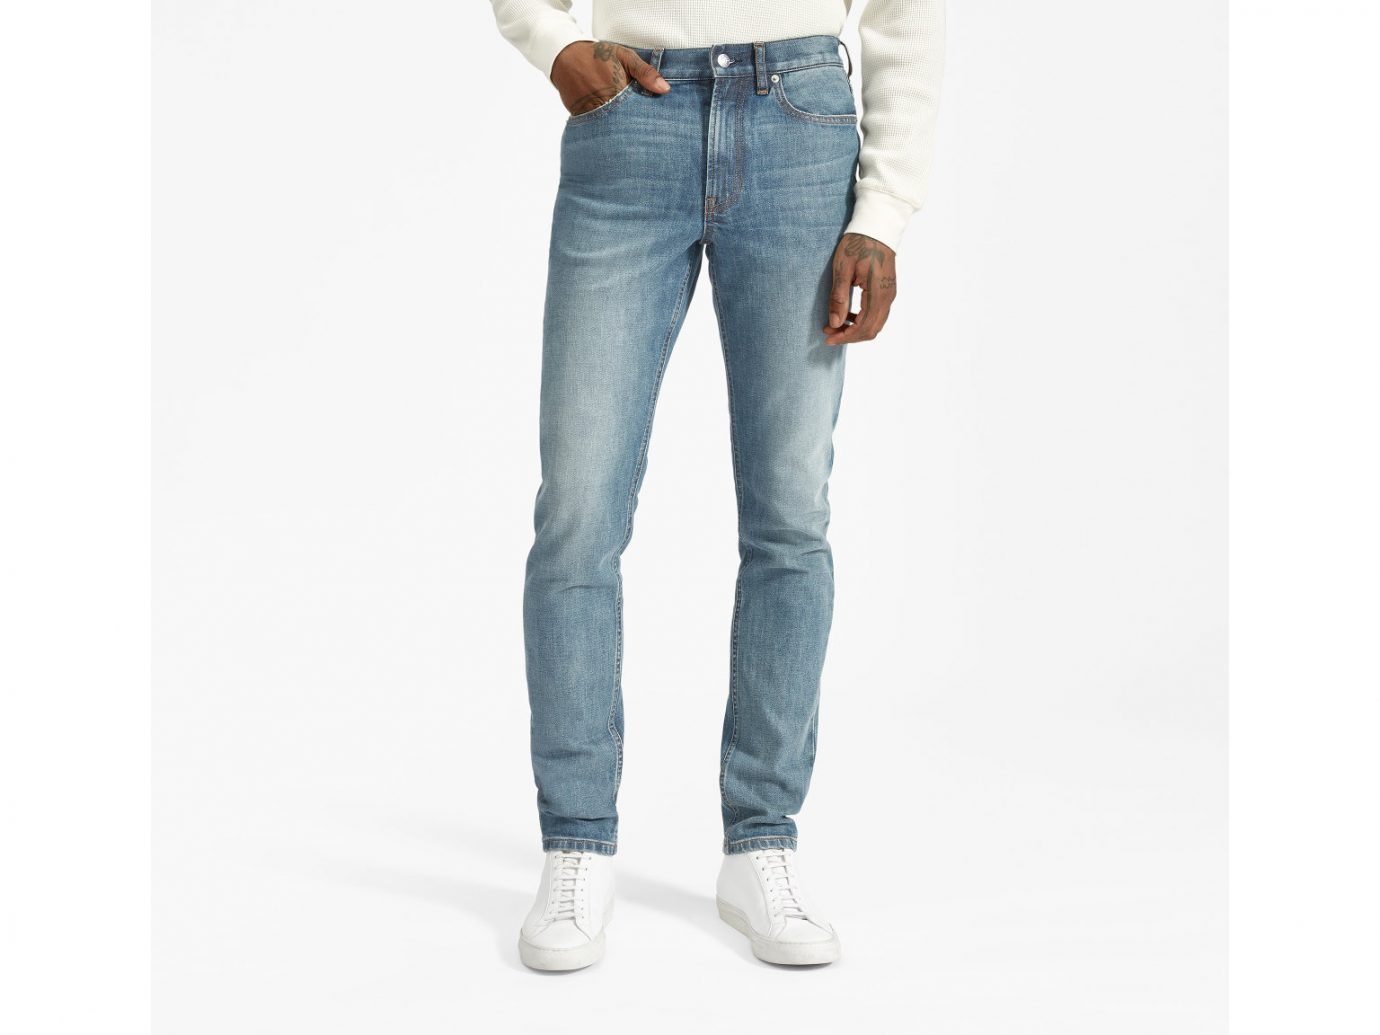 Everlane Slim fit jeans